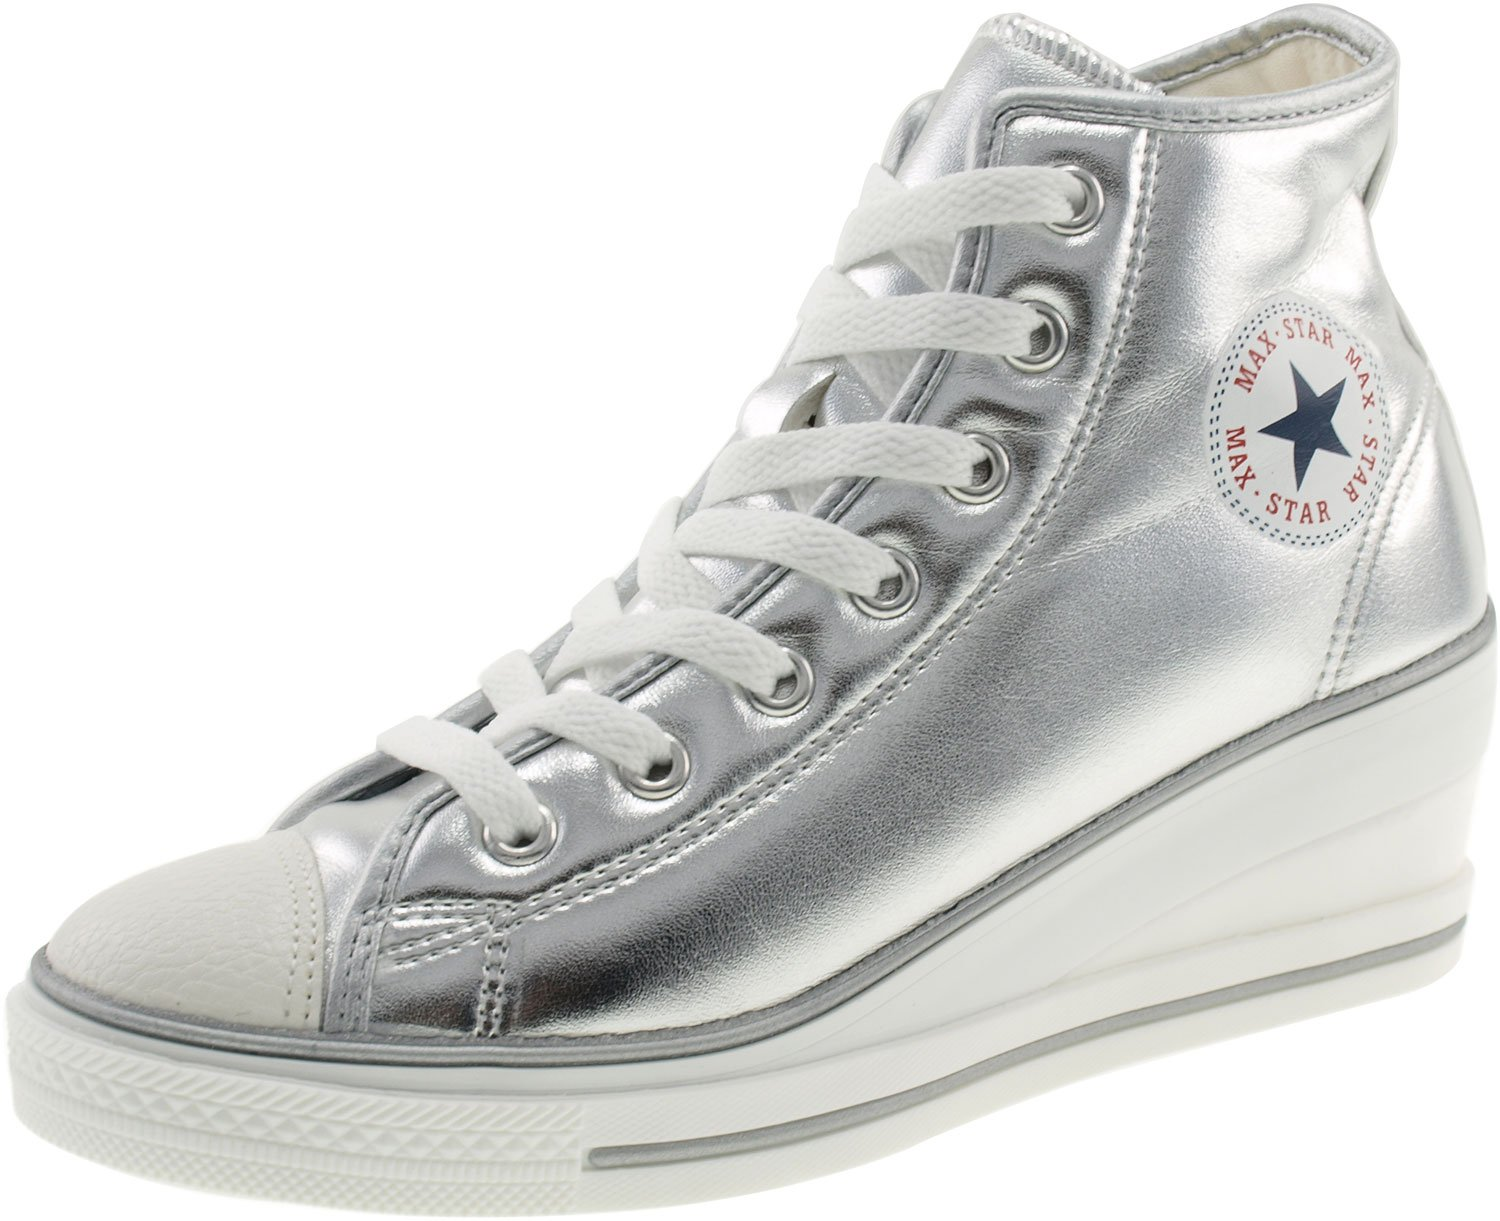 Maxstar Women's 7H Zipper Low Wedge Heel Sneakers B00COWNKOU 5.5 B(M) US|Pu-silver